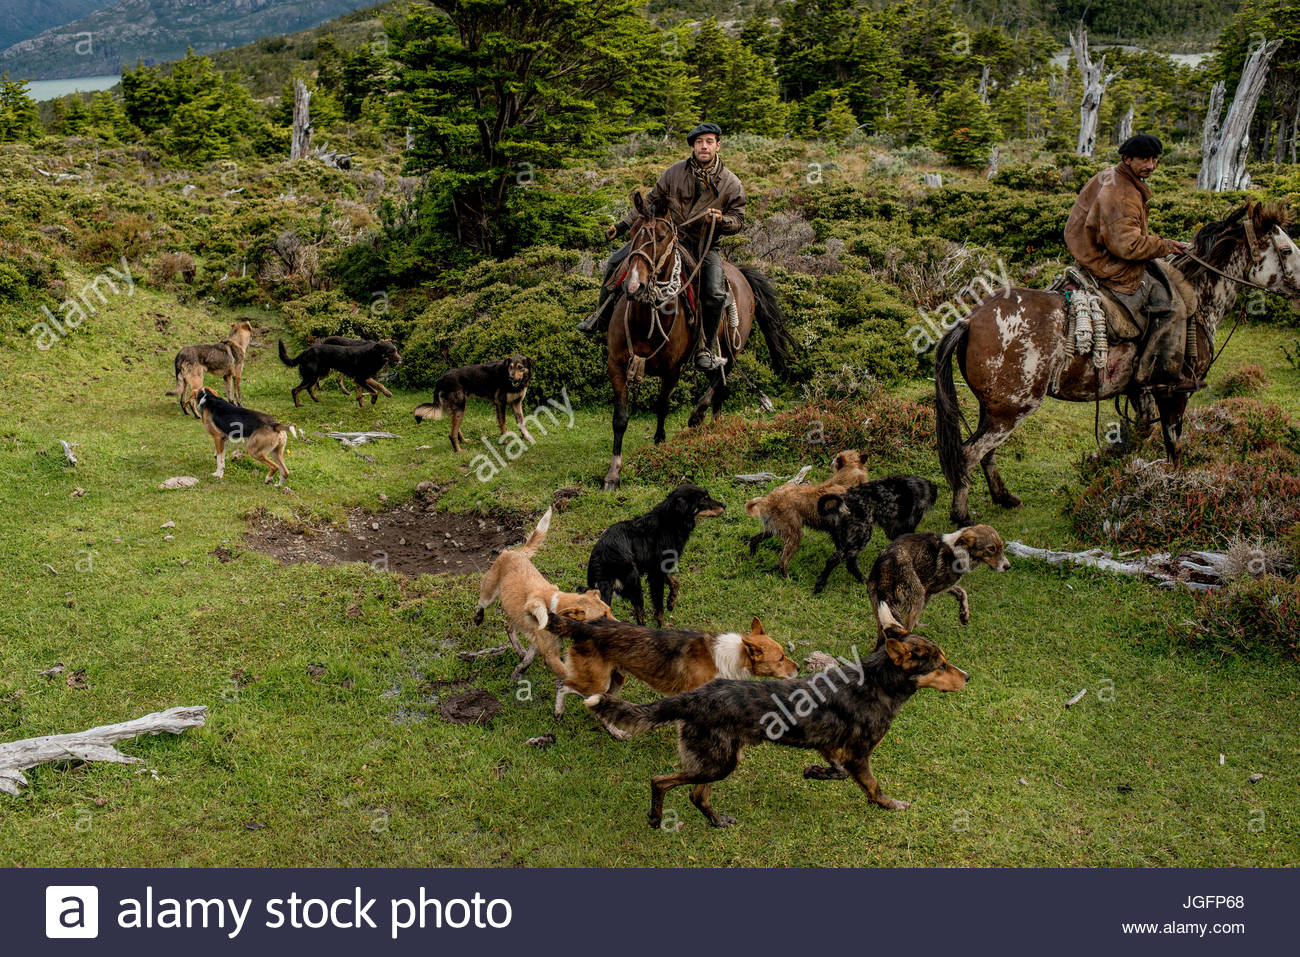 Bagualeros, cowboys who capture feral livestock, on an expedition with their dogs. Stock Photo